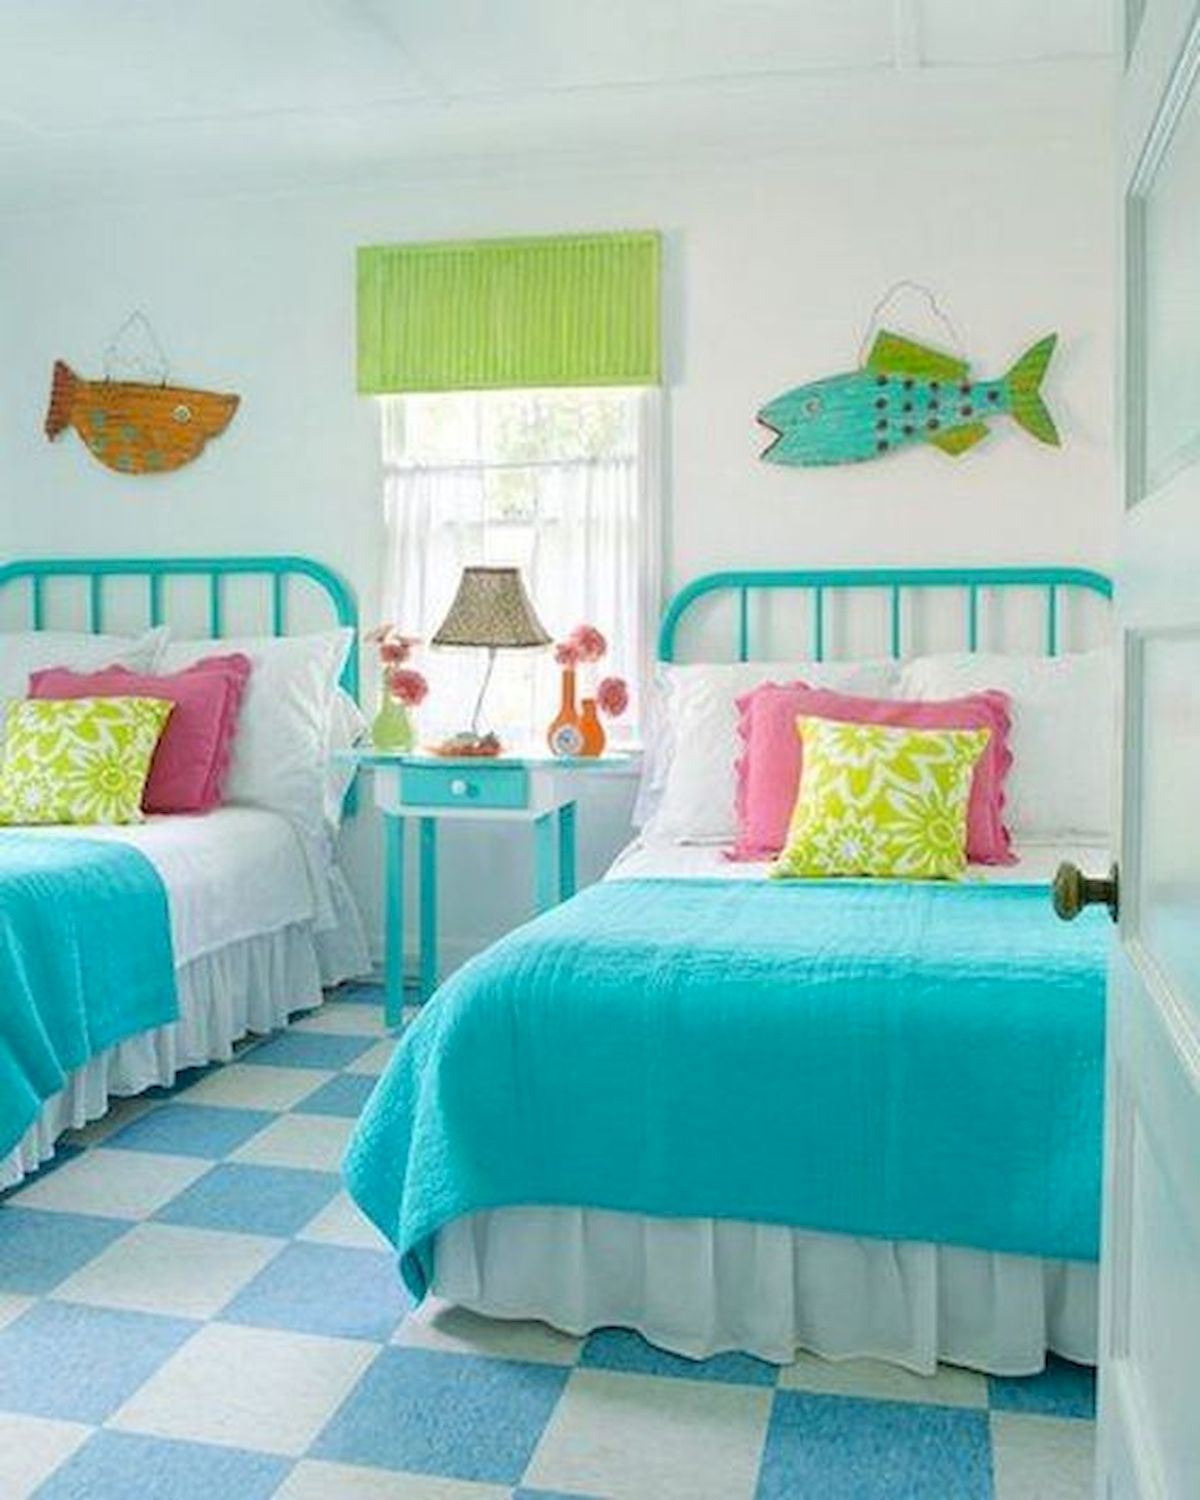 70 Beautiful DIY Colorful Bedroom Design Ideas and Remodel (24)